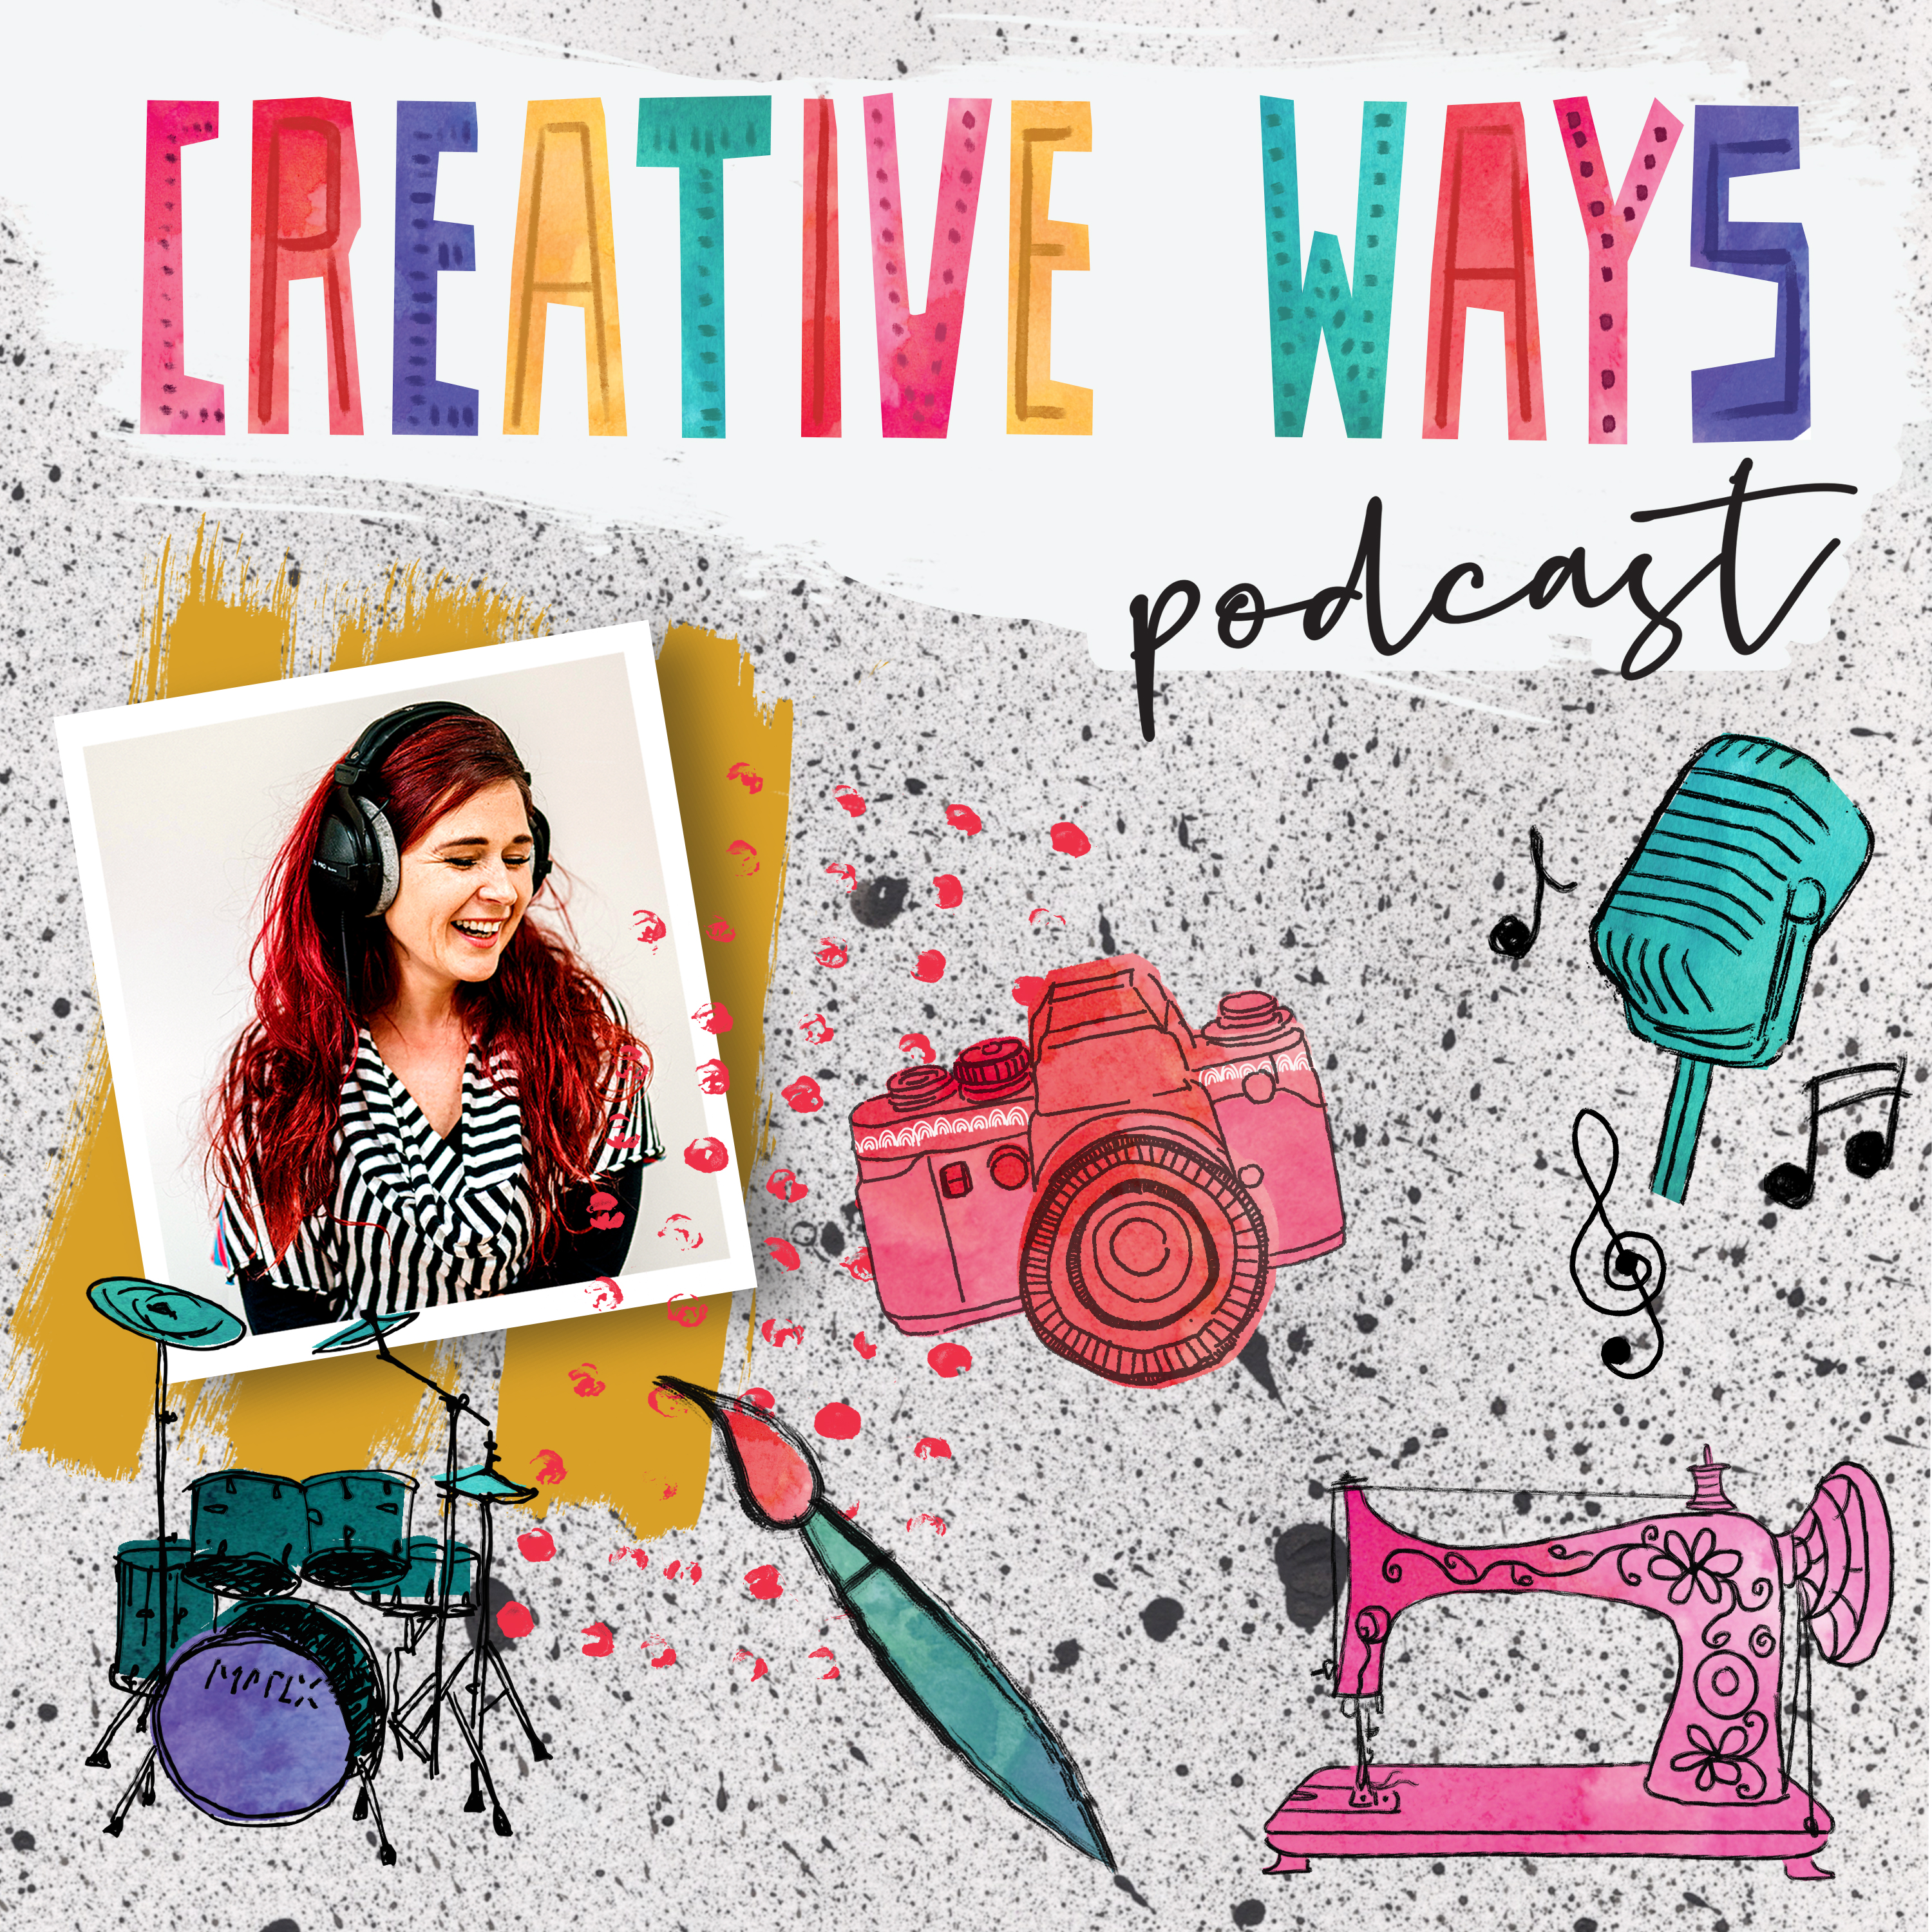 How to be Intuitive, Passionate and the Importance of Self-Care Throughout Your Art Career with Tracy Verdugo